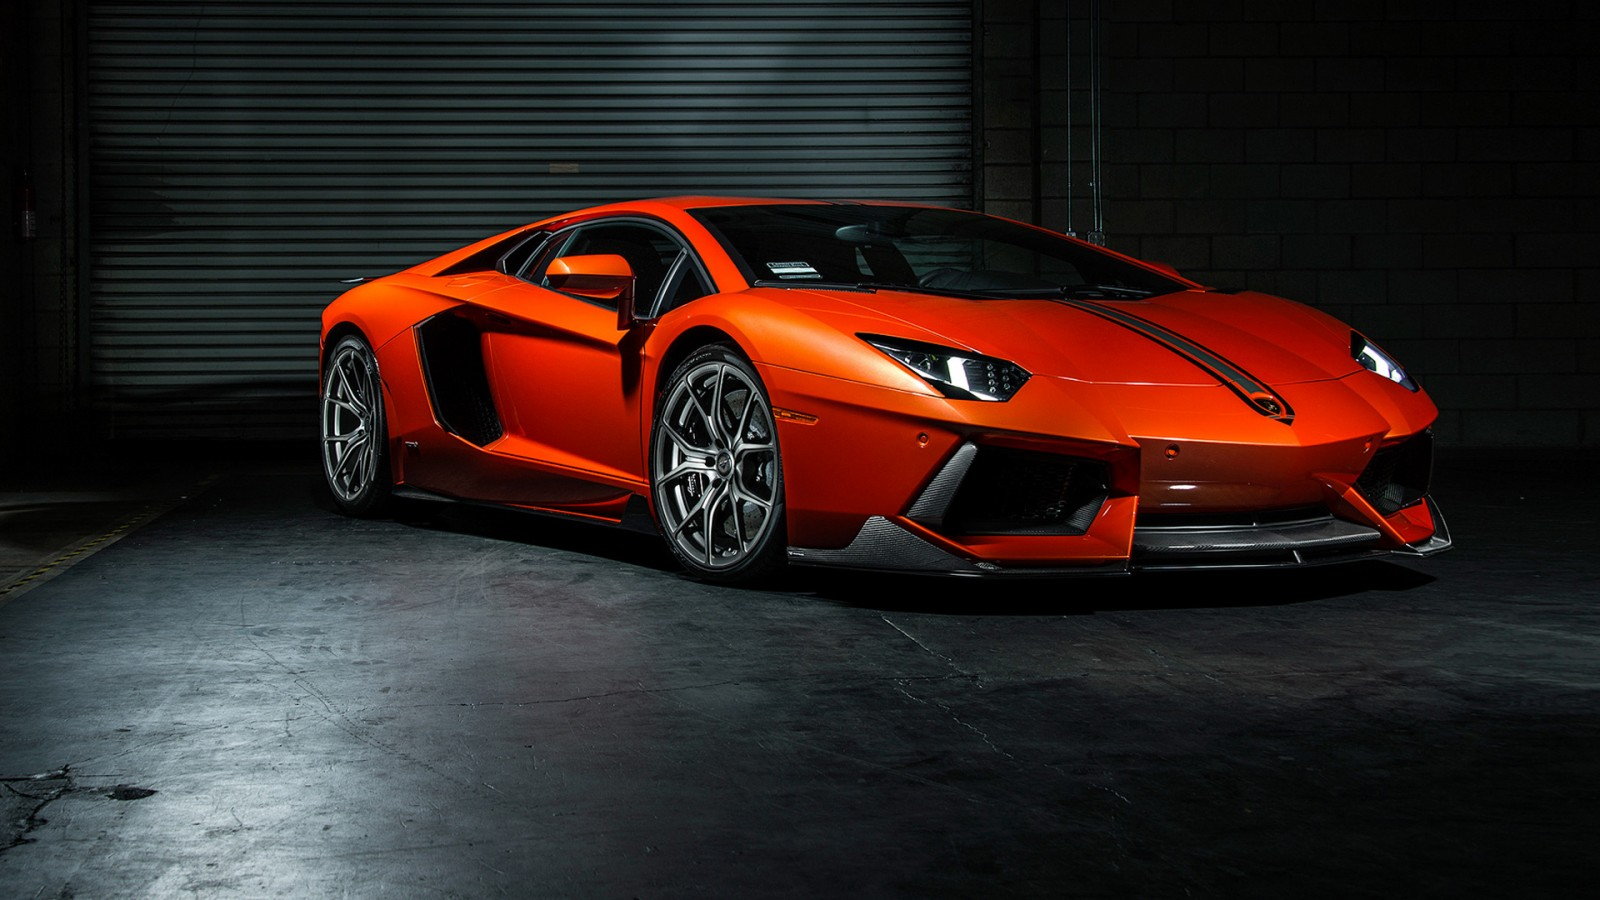 2015 Vorsteiner Lamborghini Aventador Coupe Wallpaper | HD ...